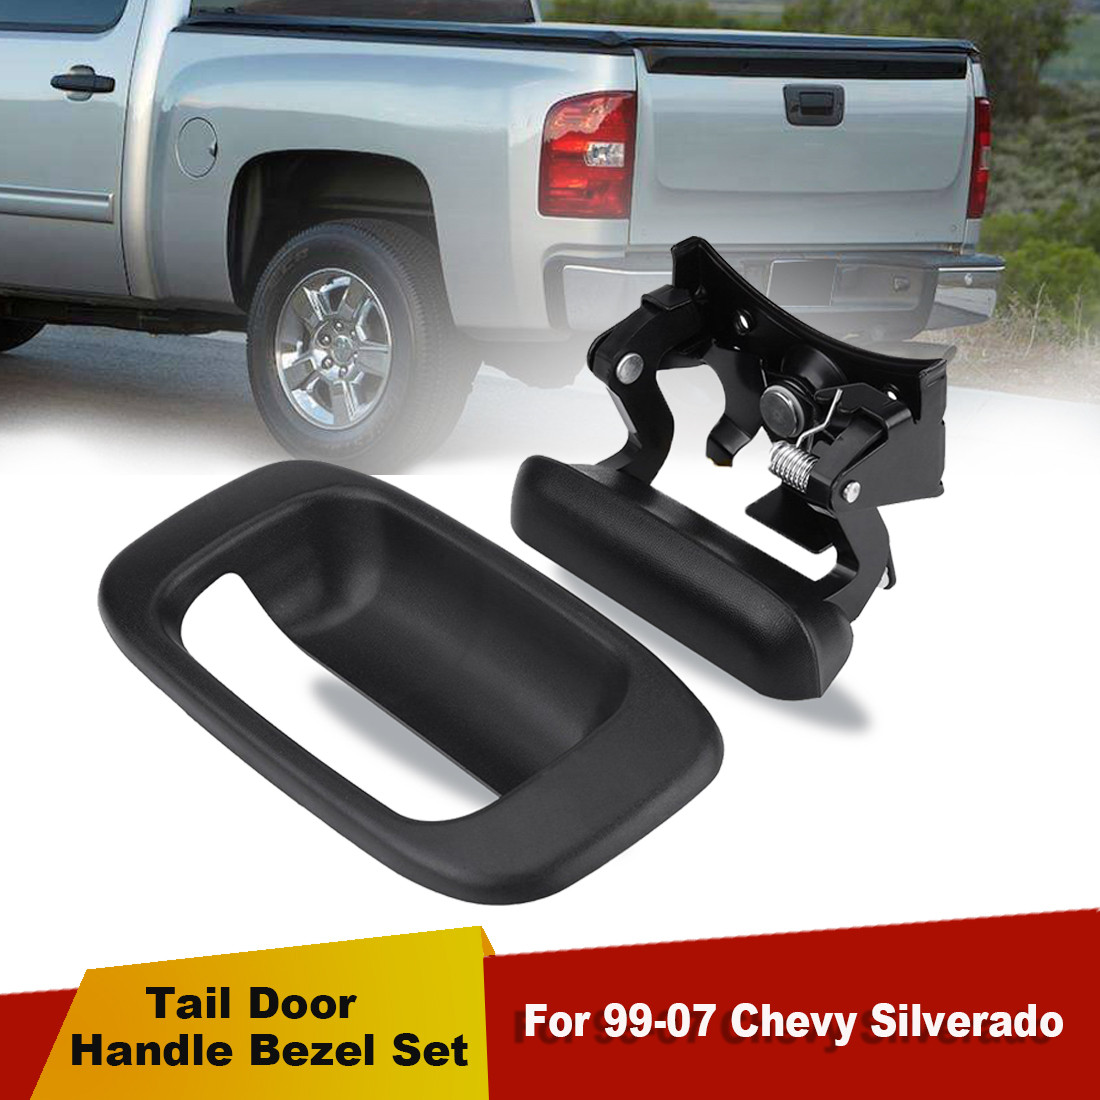 SET OF 5 PCS Chevy Silverado GMC Sierra Outside Handles and Tailgate /& Bezel